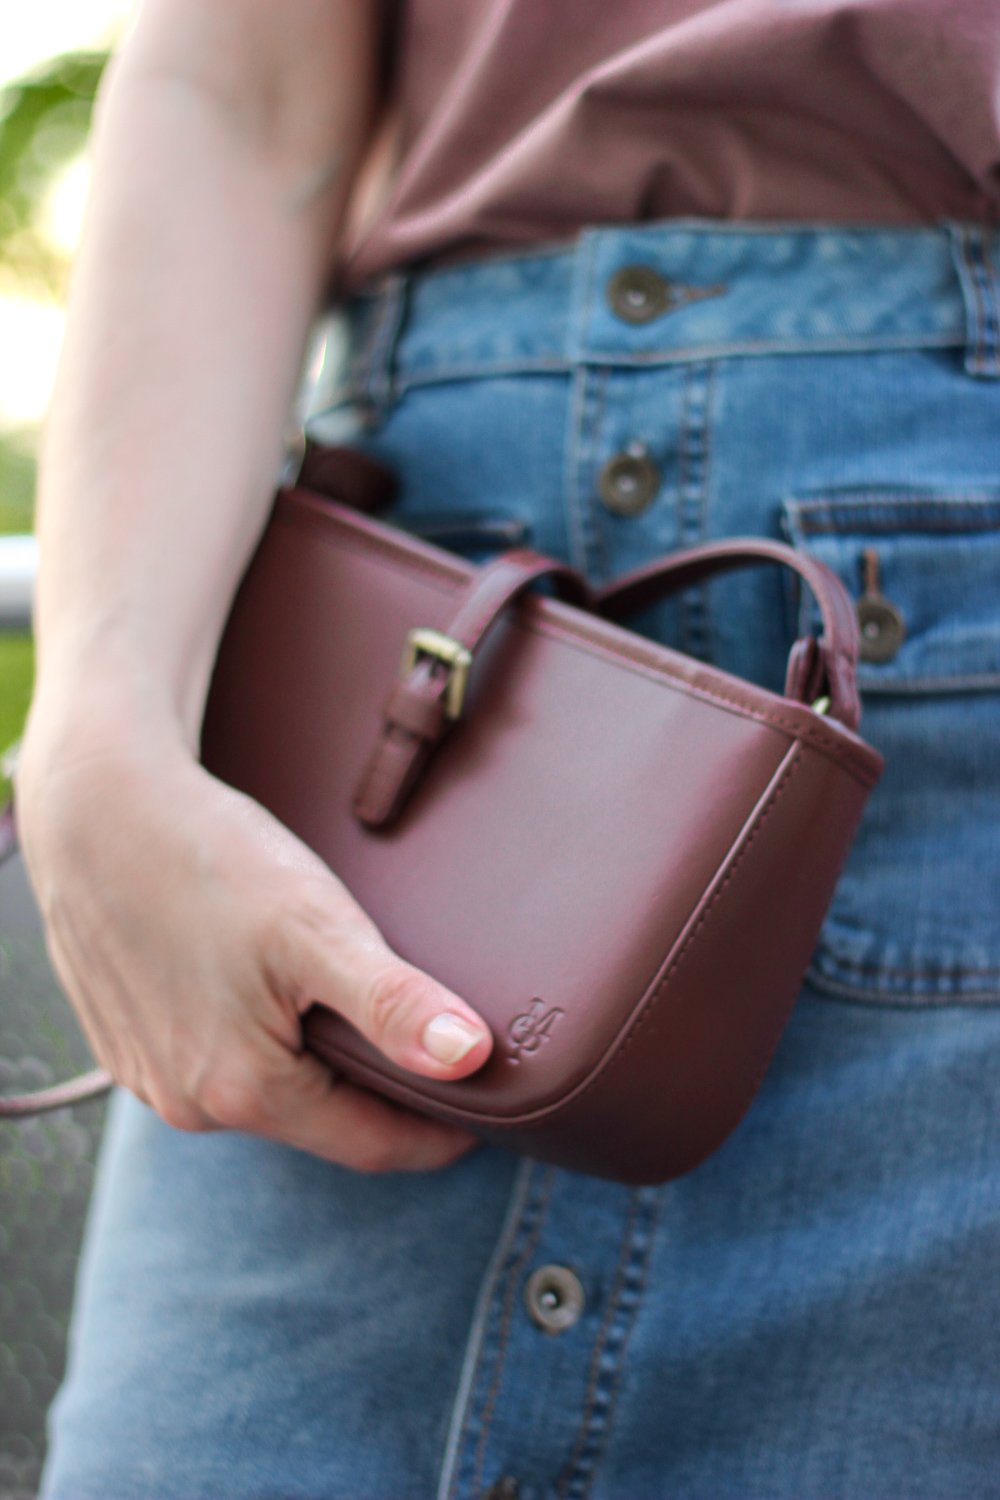 conny doll lifestyle: Details, Sommerlook, Denim, Braun, Schultertasche, Marc O'Polo